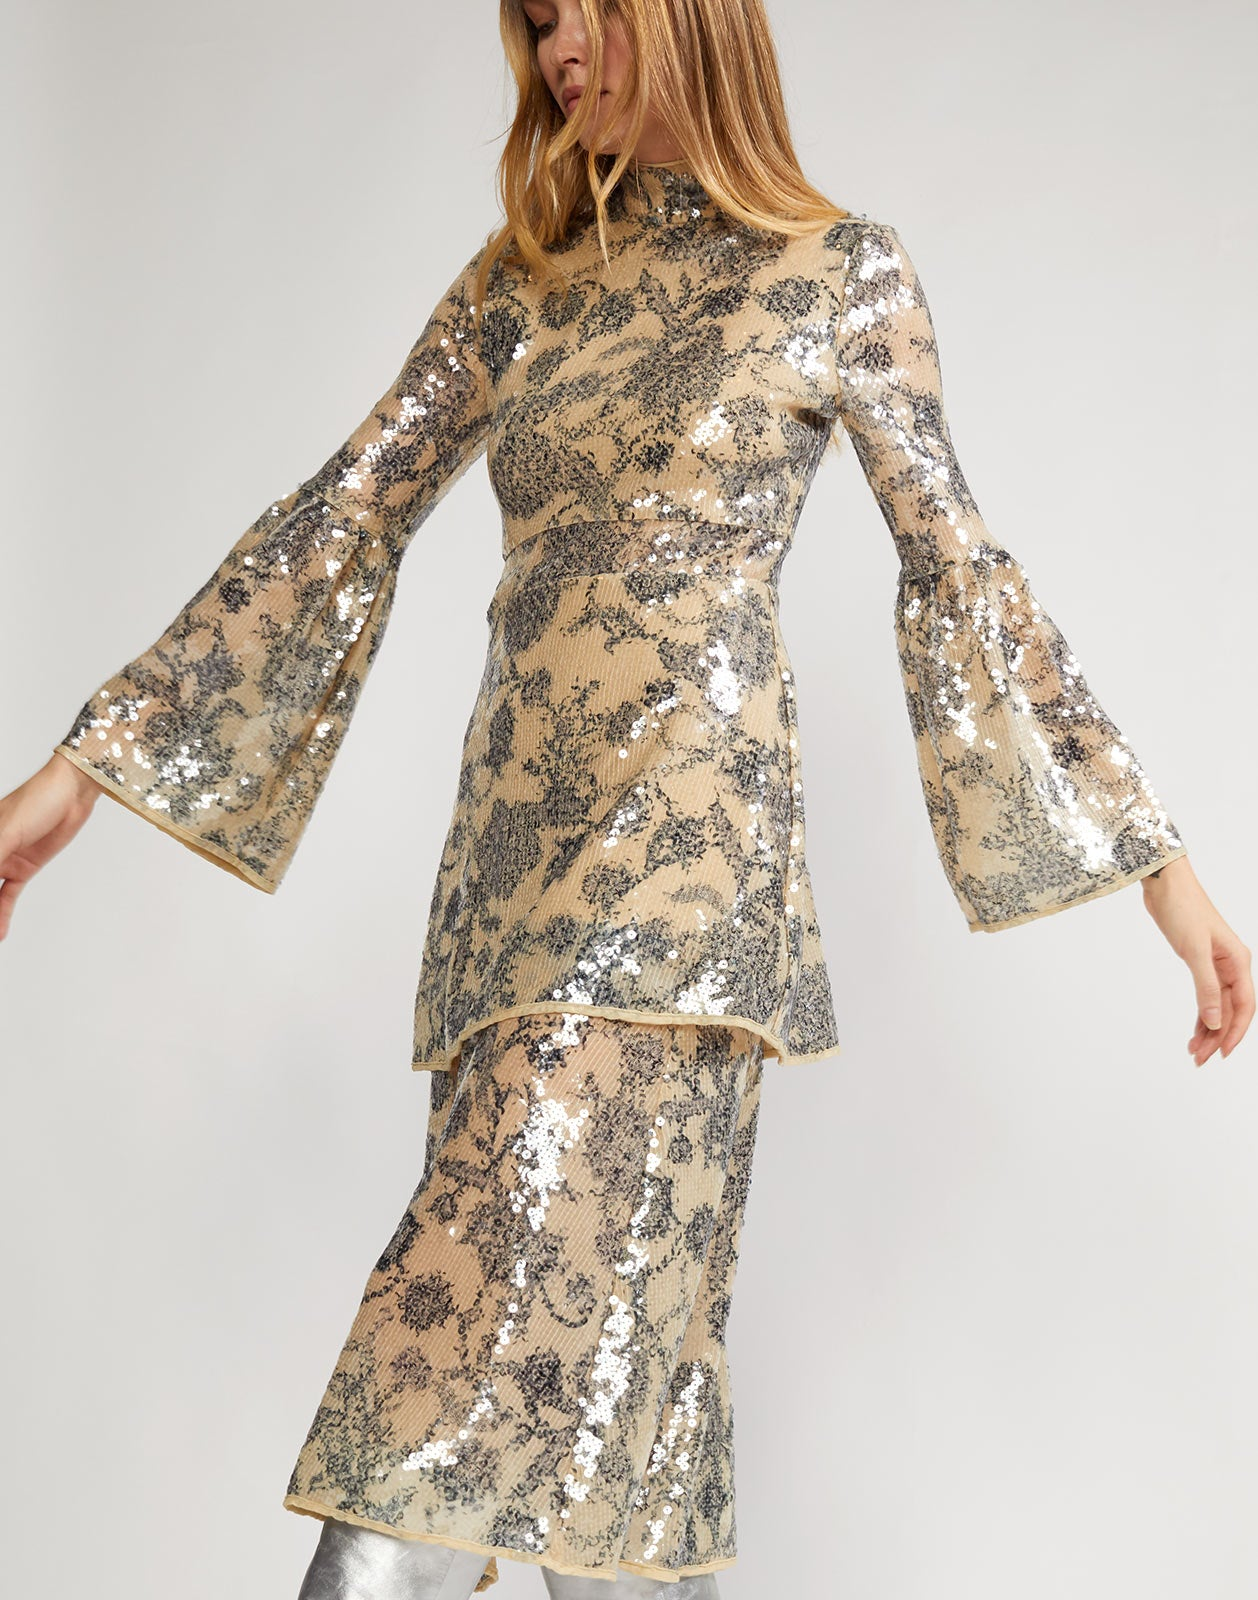 Sequined bell sleeve dress with floral motif